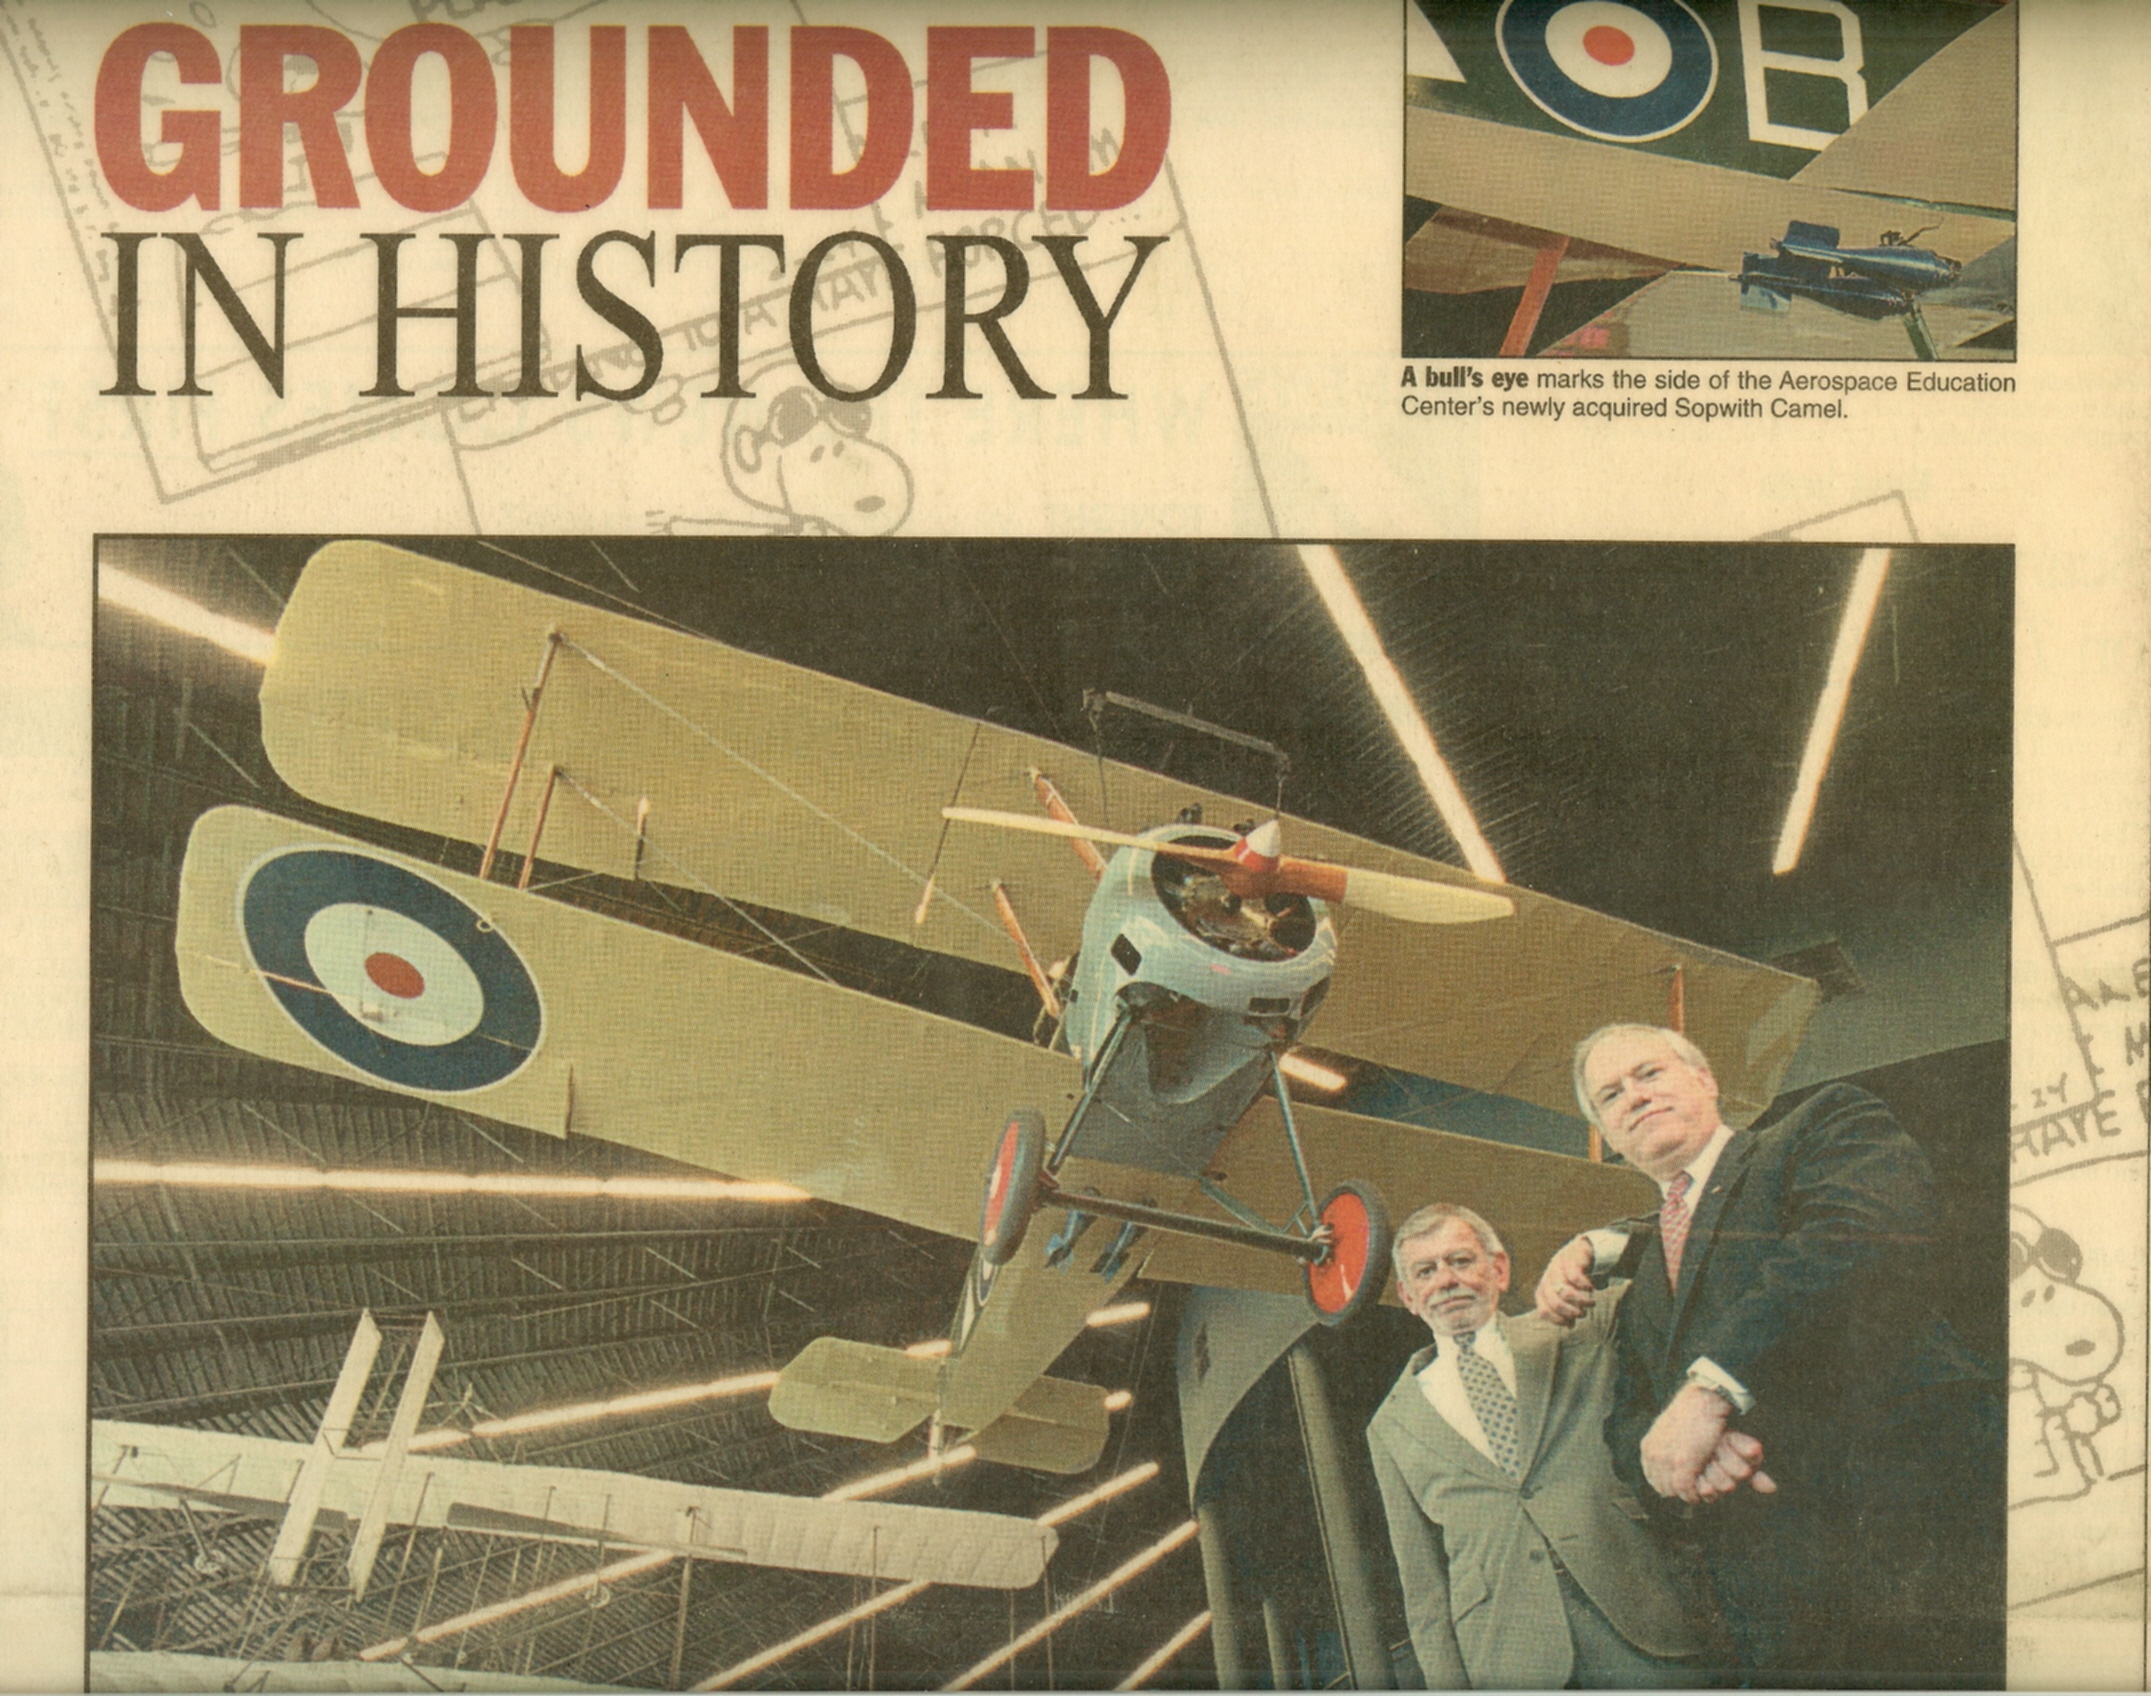 Grounded in History clipping.jpg